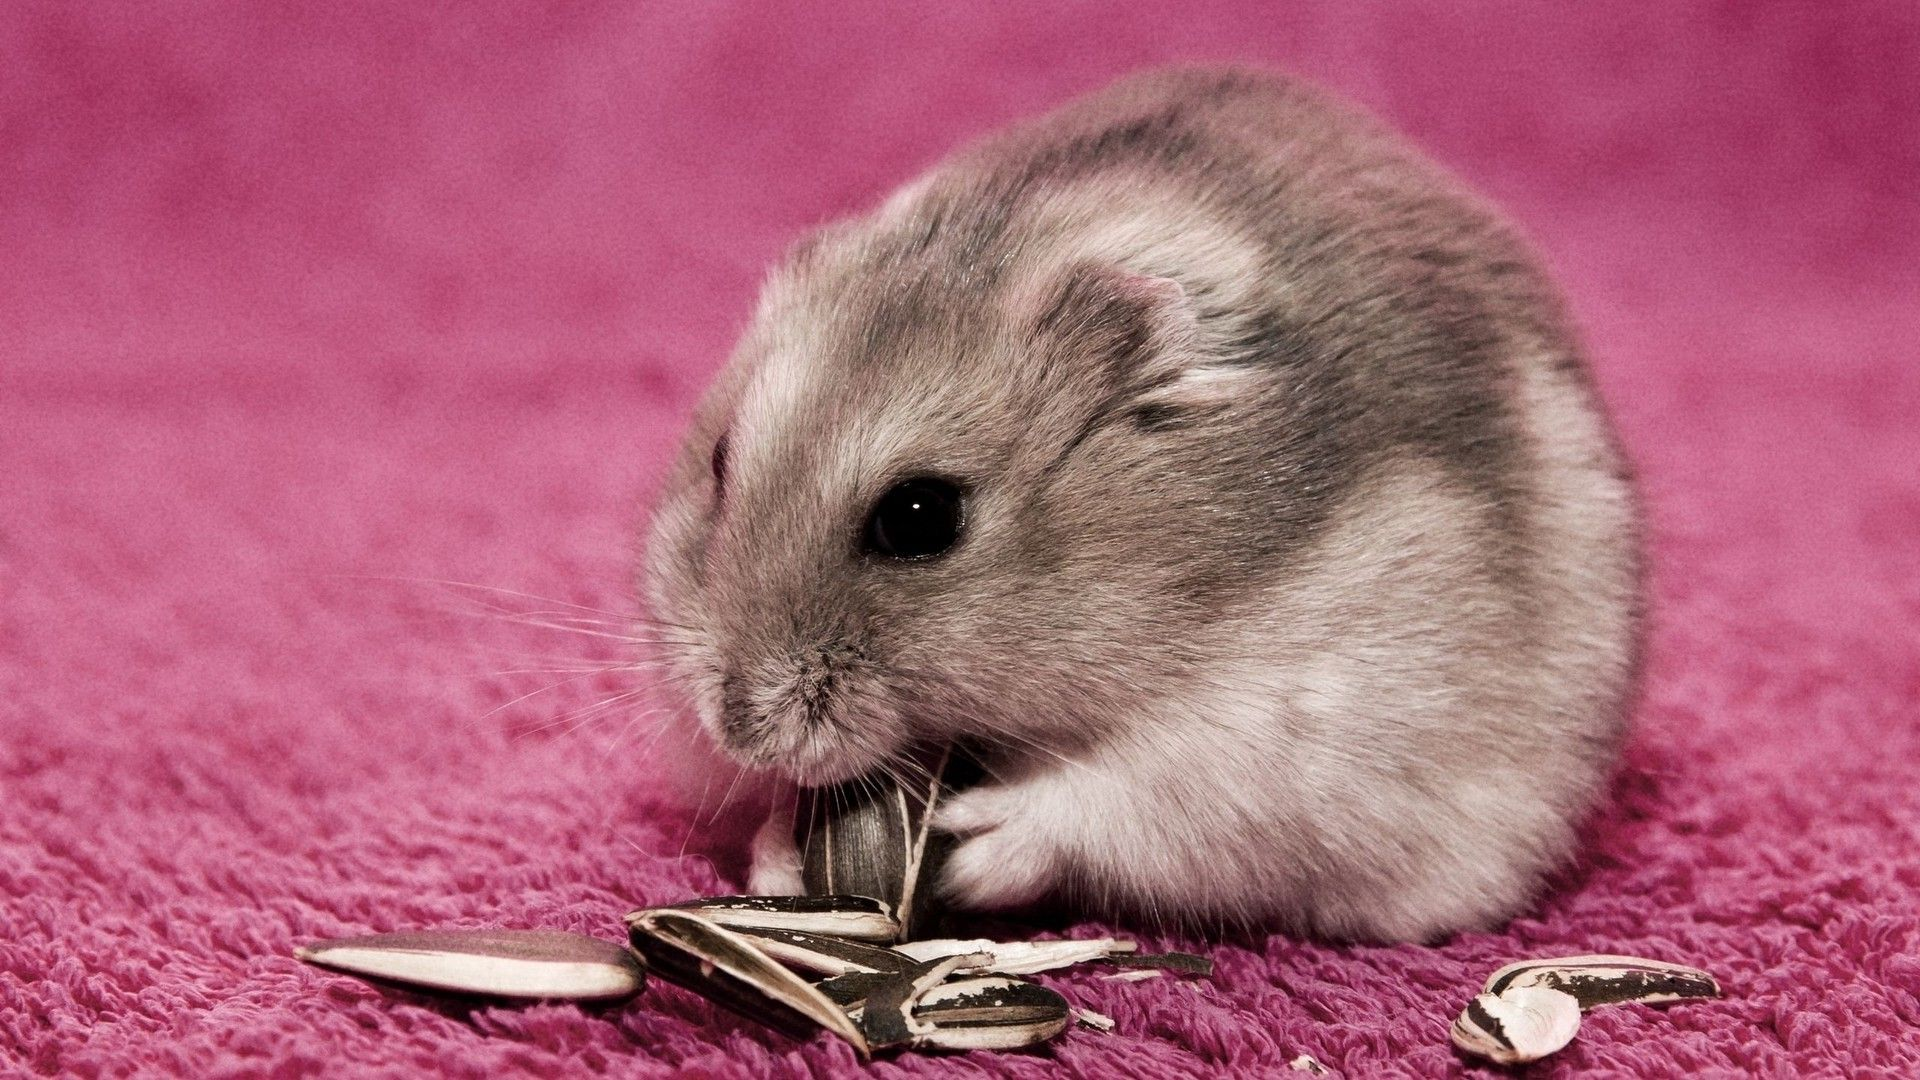 hamster on a pink carpet 15948 1920x1080